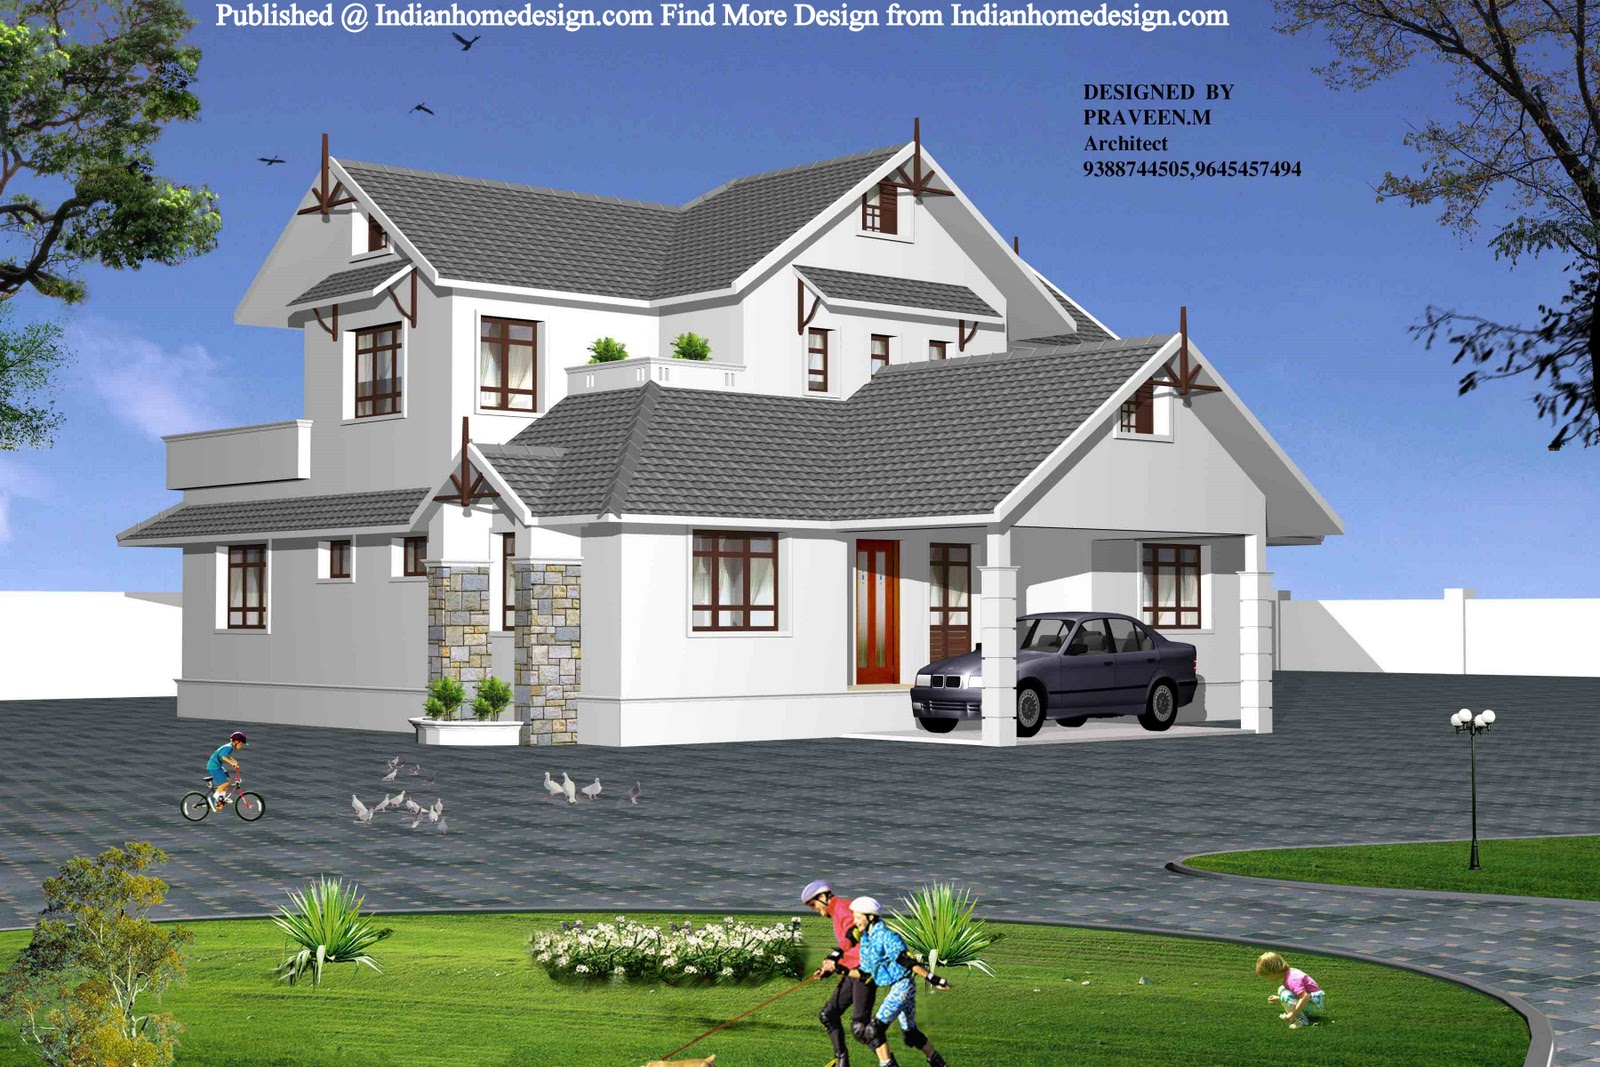 Kerala Beautiful Houses Kerala House Plans Jpg